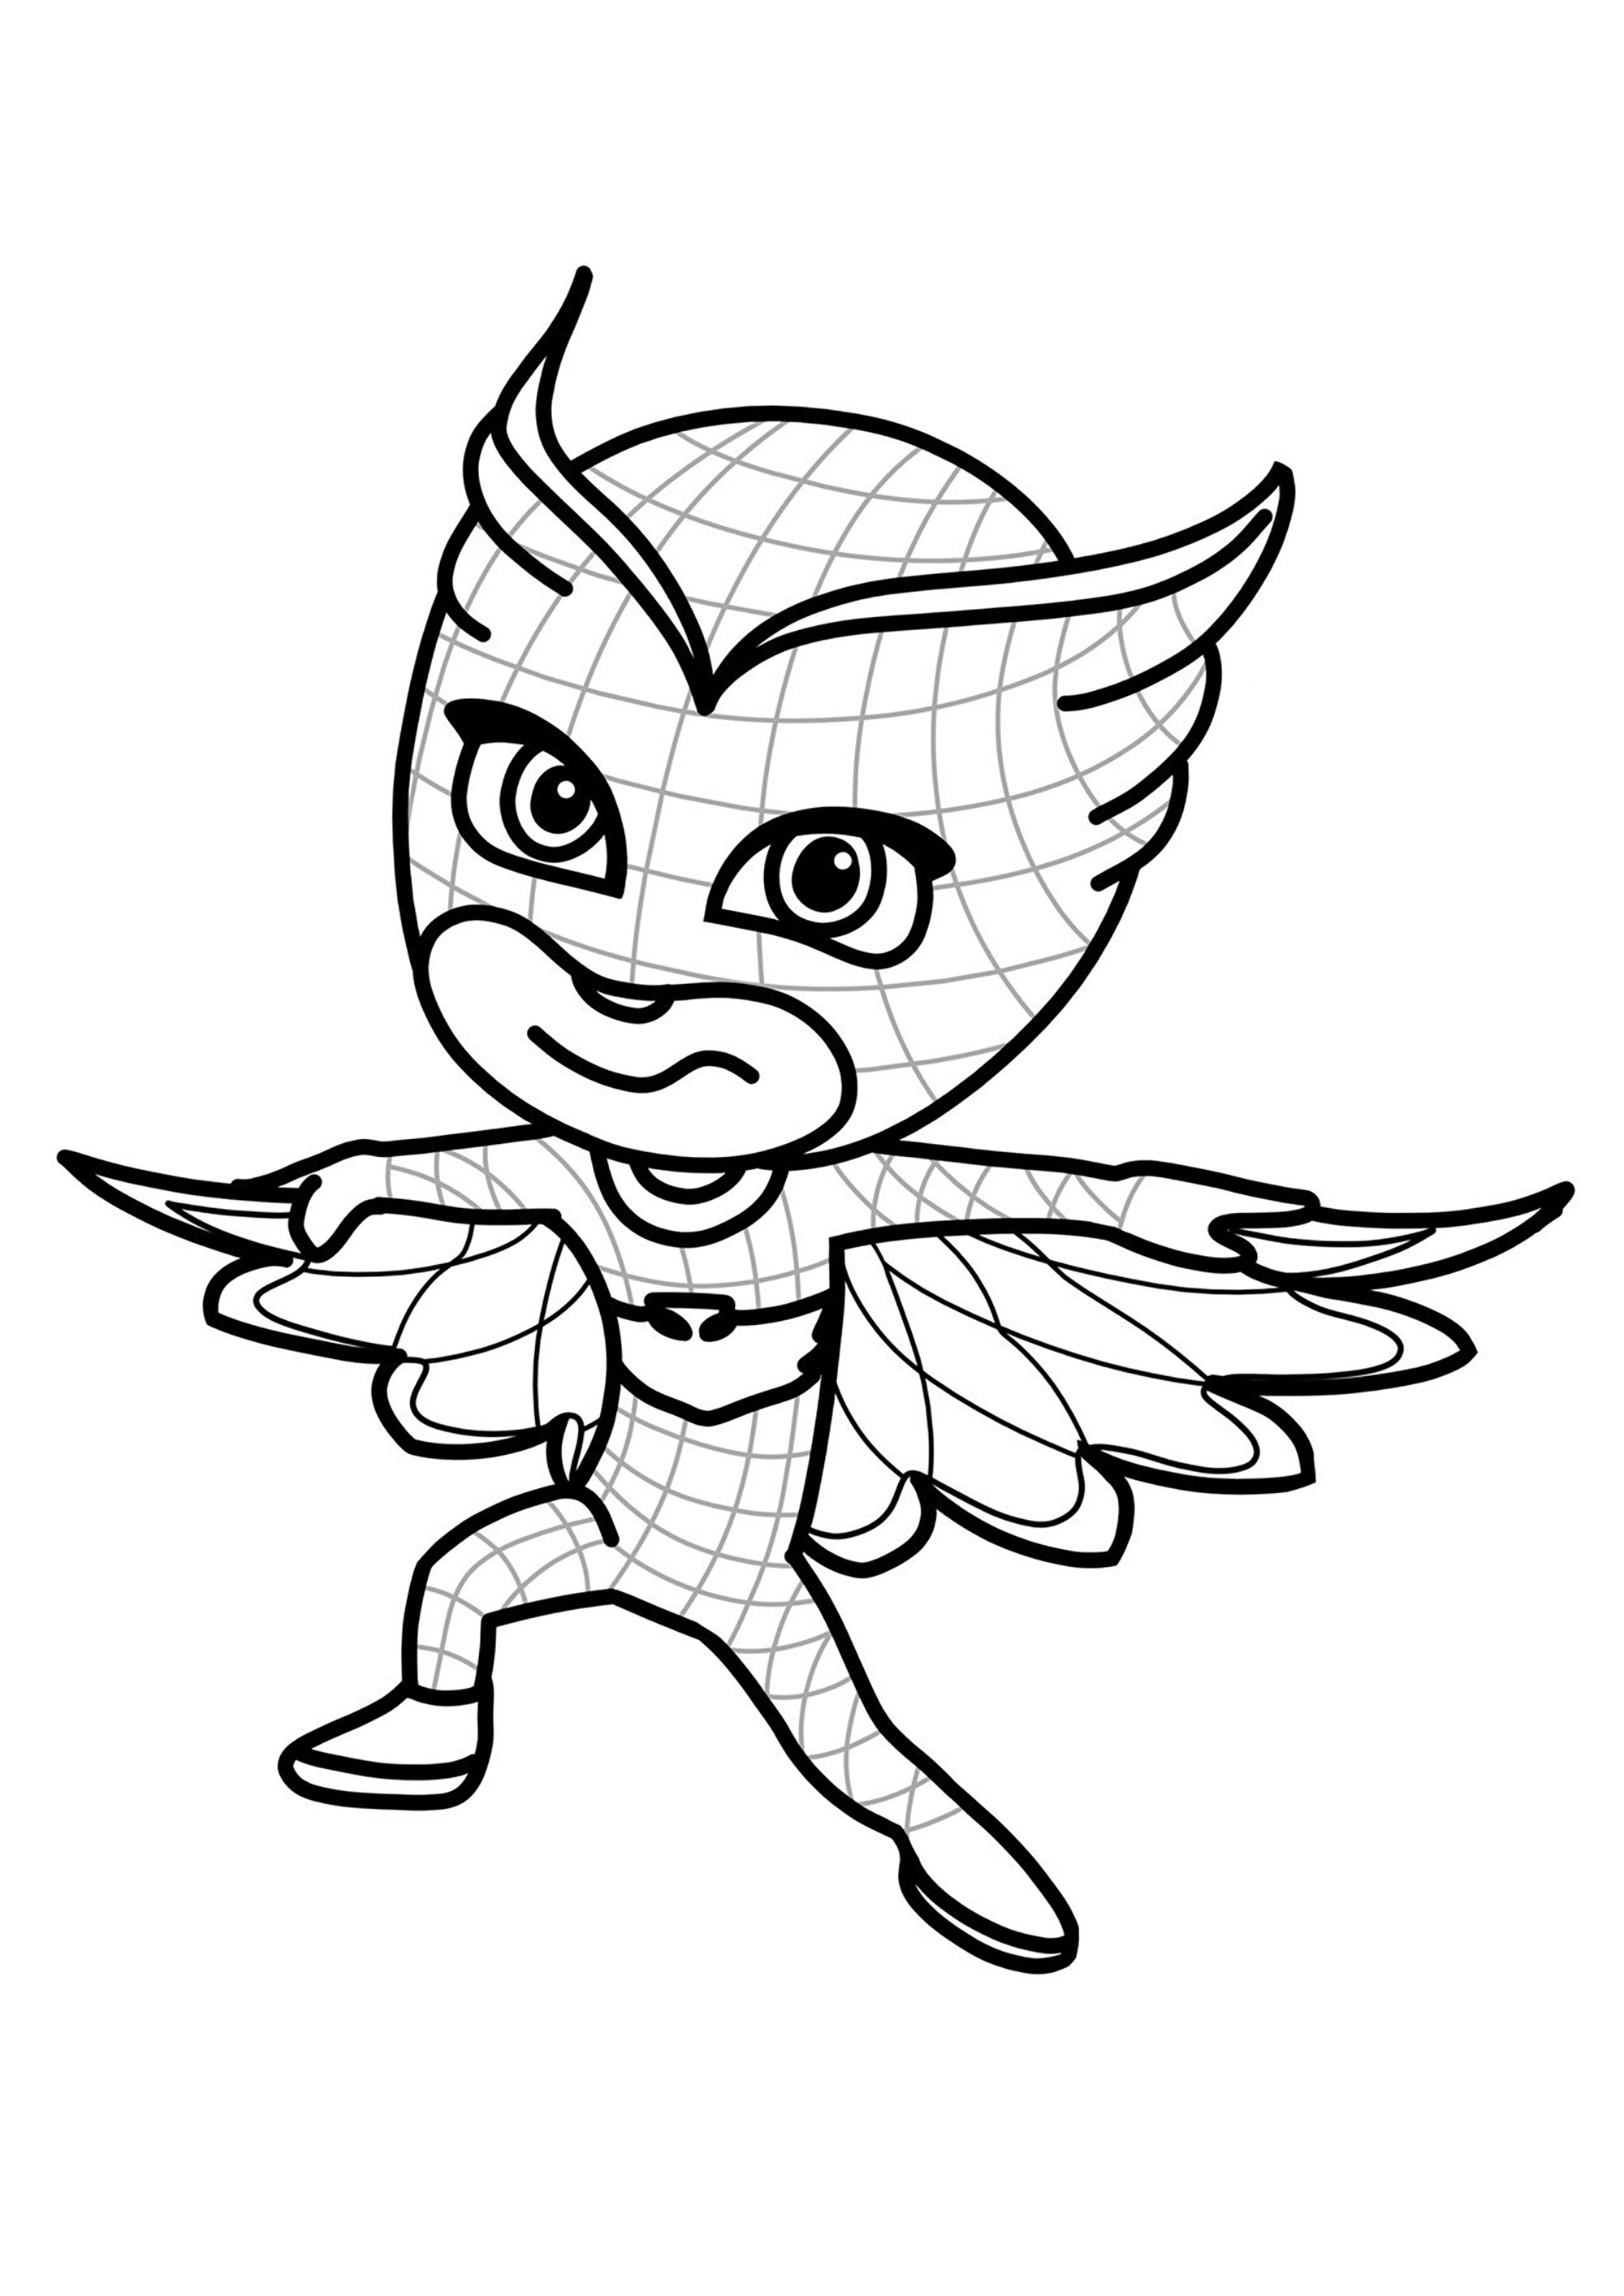 Easy free PJ Masks coloring page to download